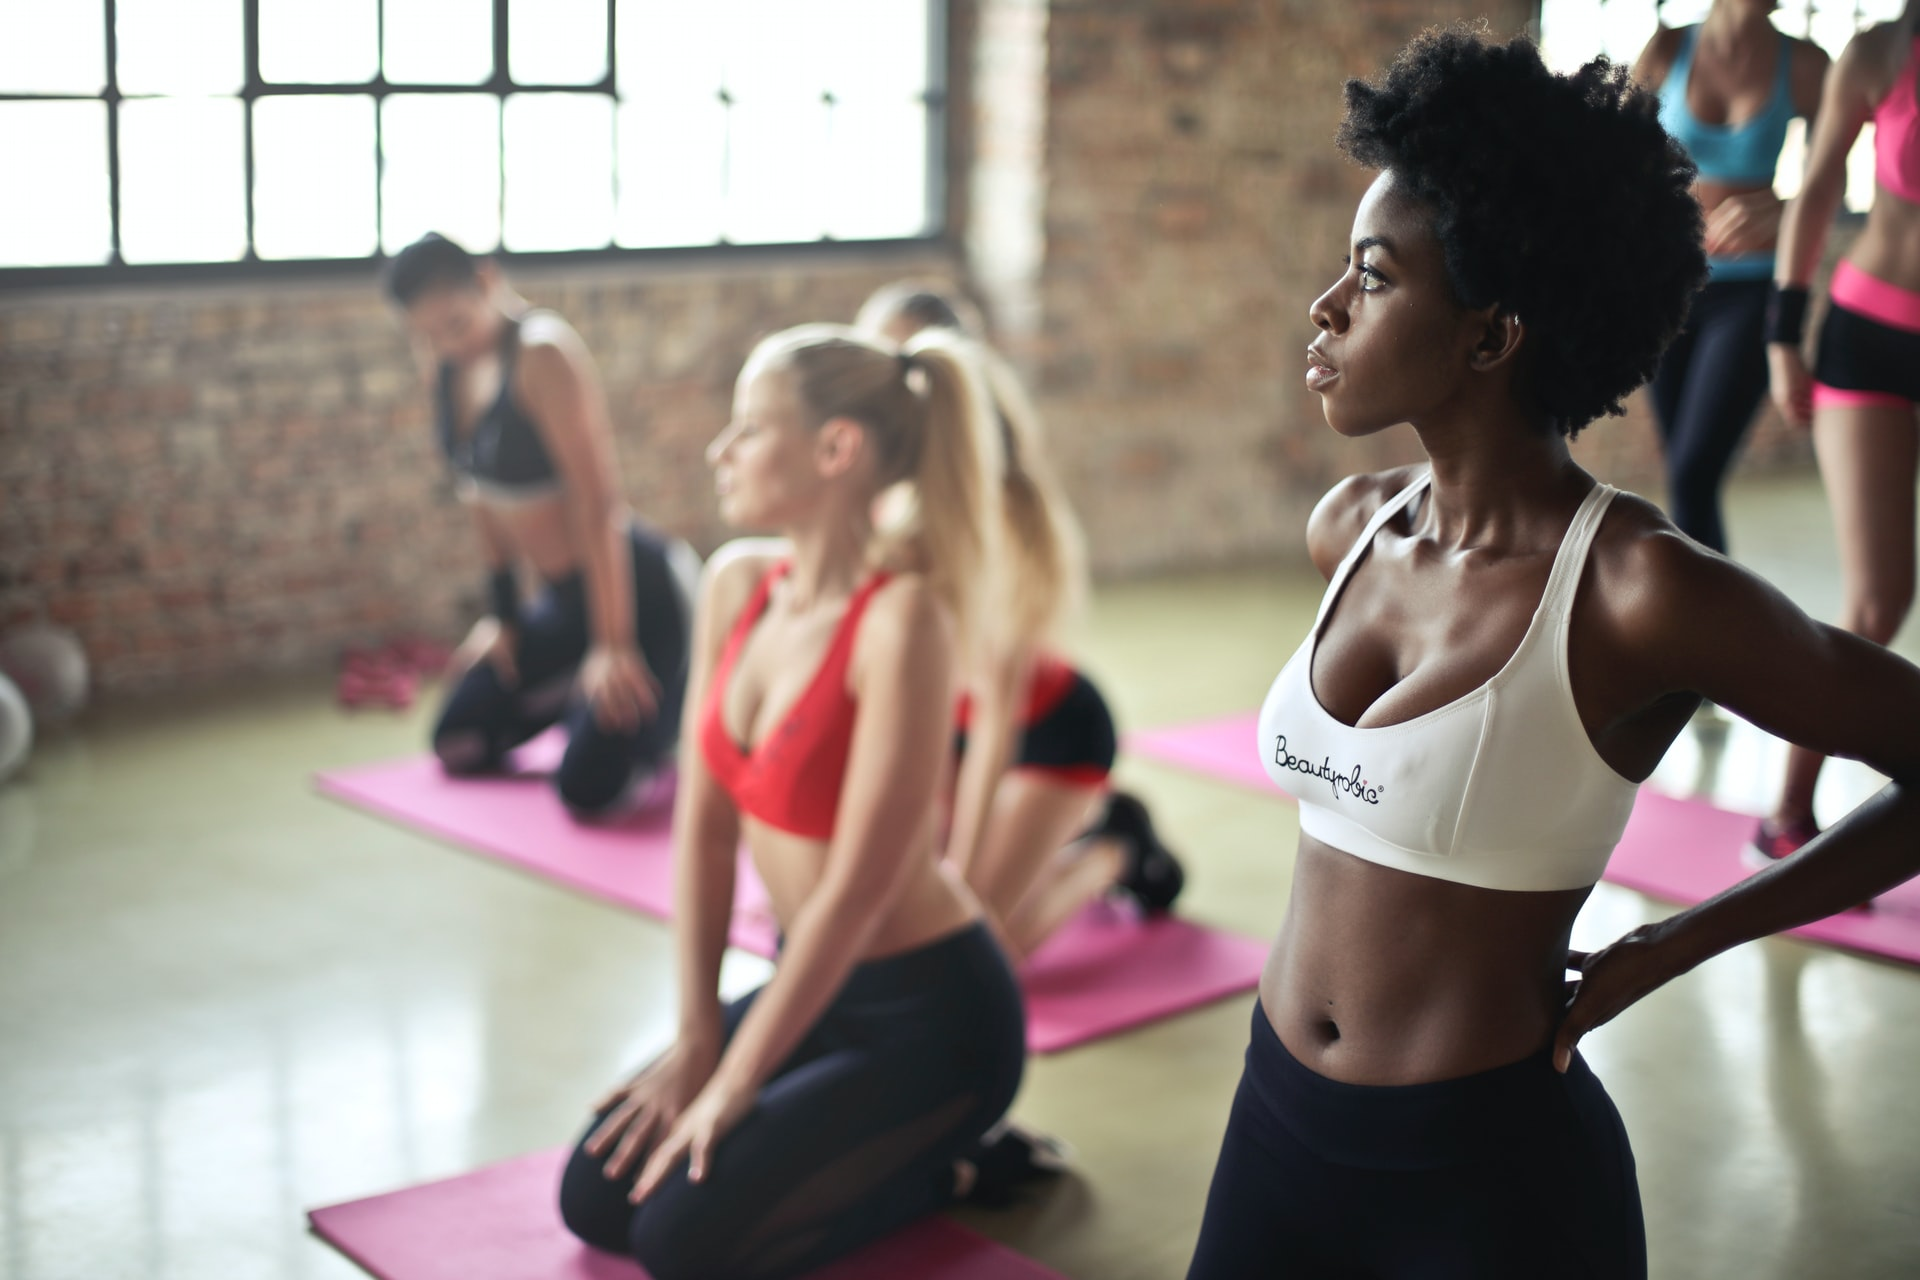 Tai Chi Or Yoga: Which Workout Should You Try?